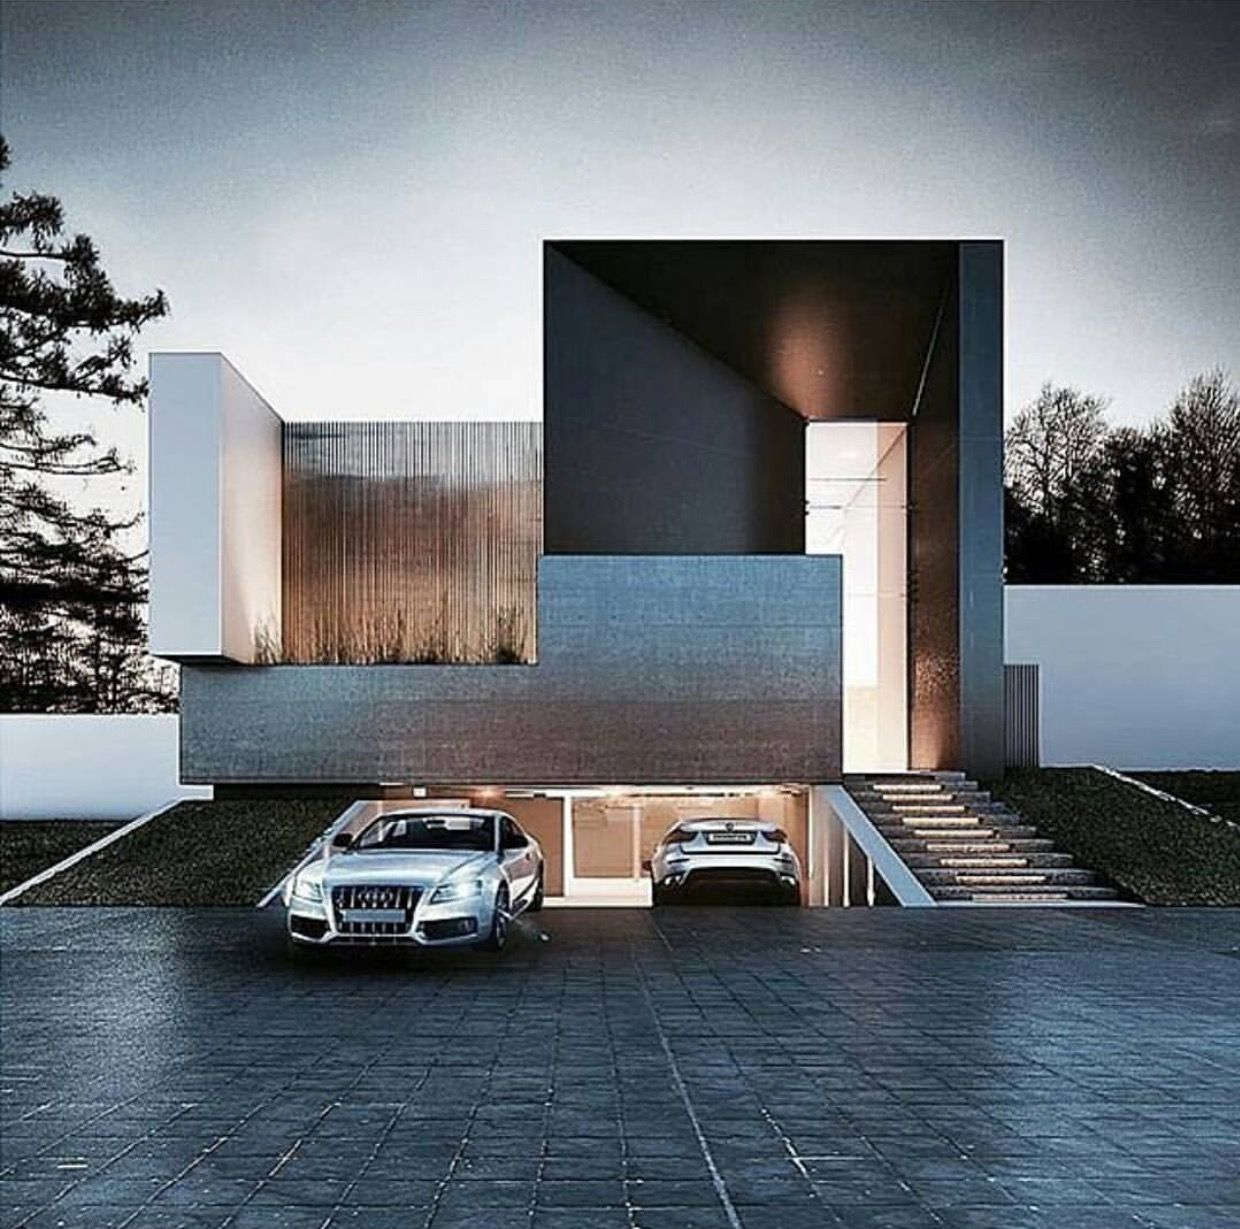 Garage Design Architecture: Entrance For Car. House Garage Design.